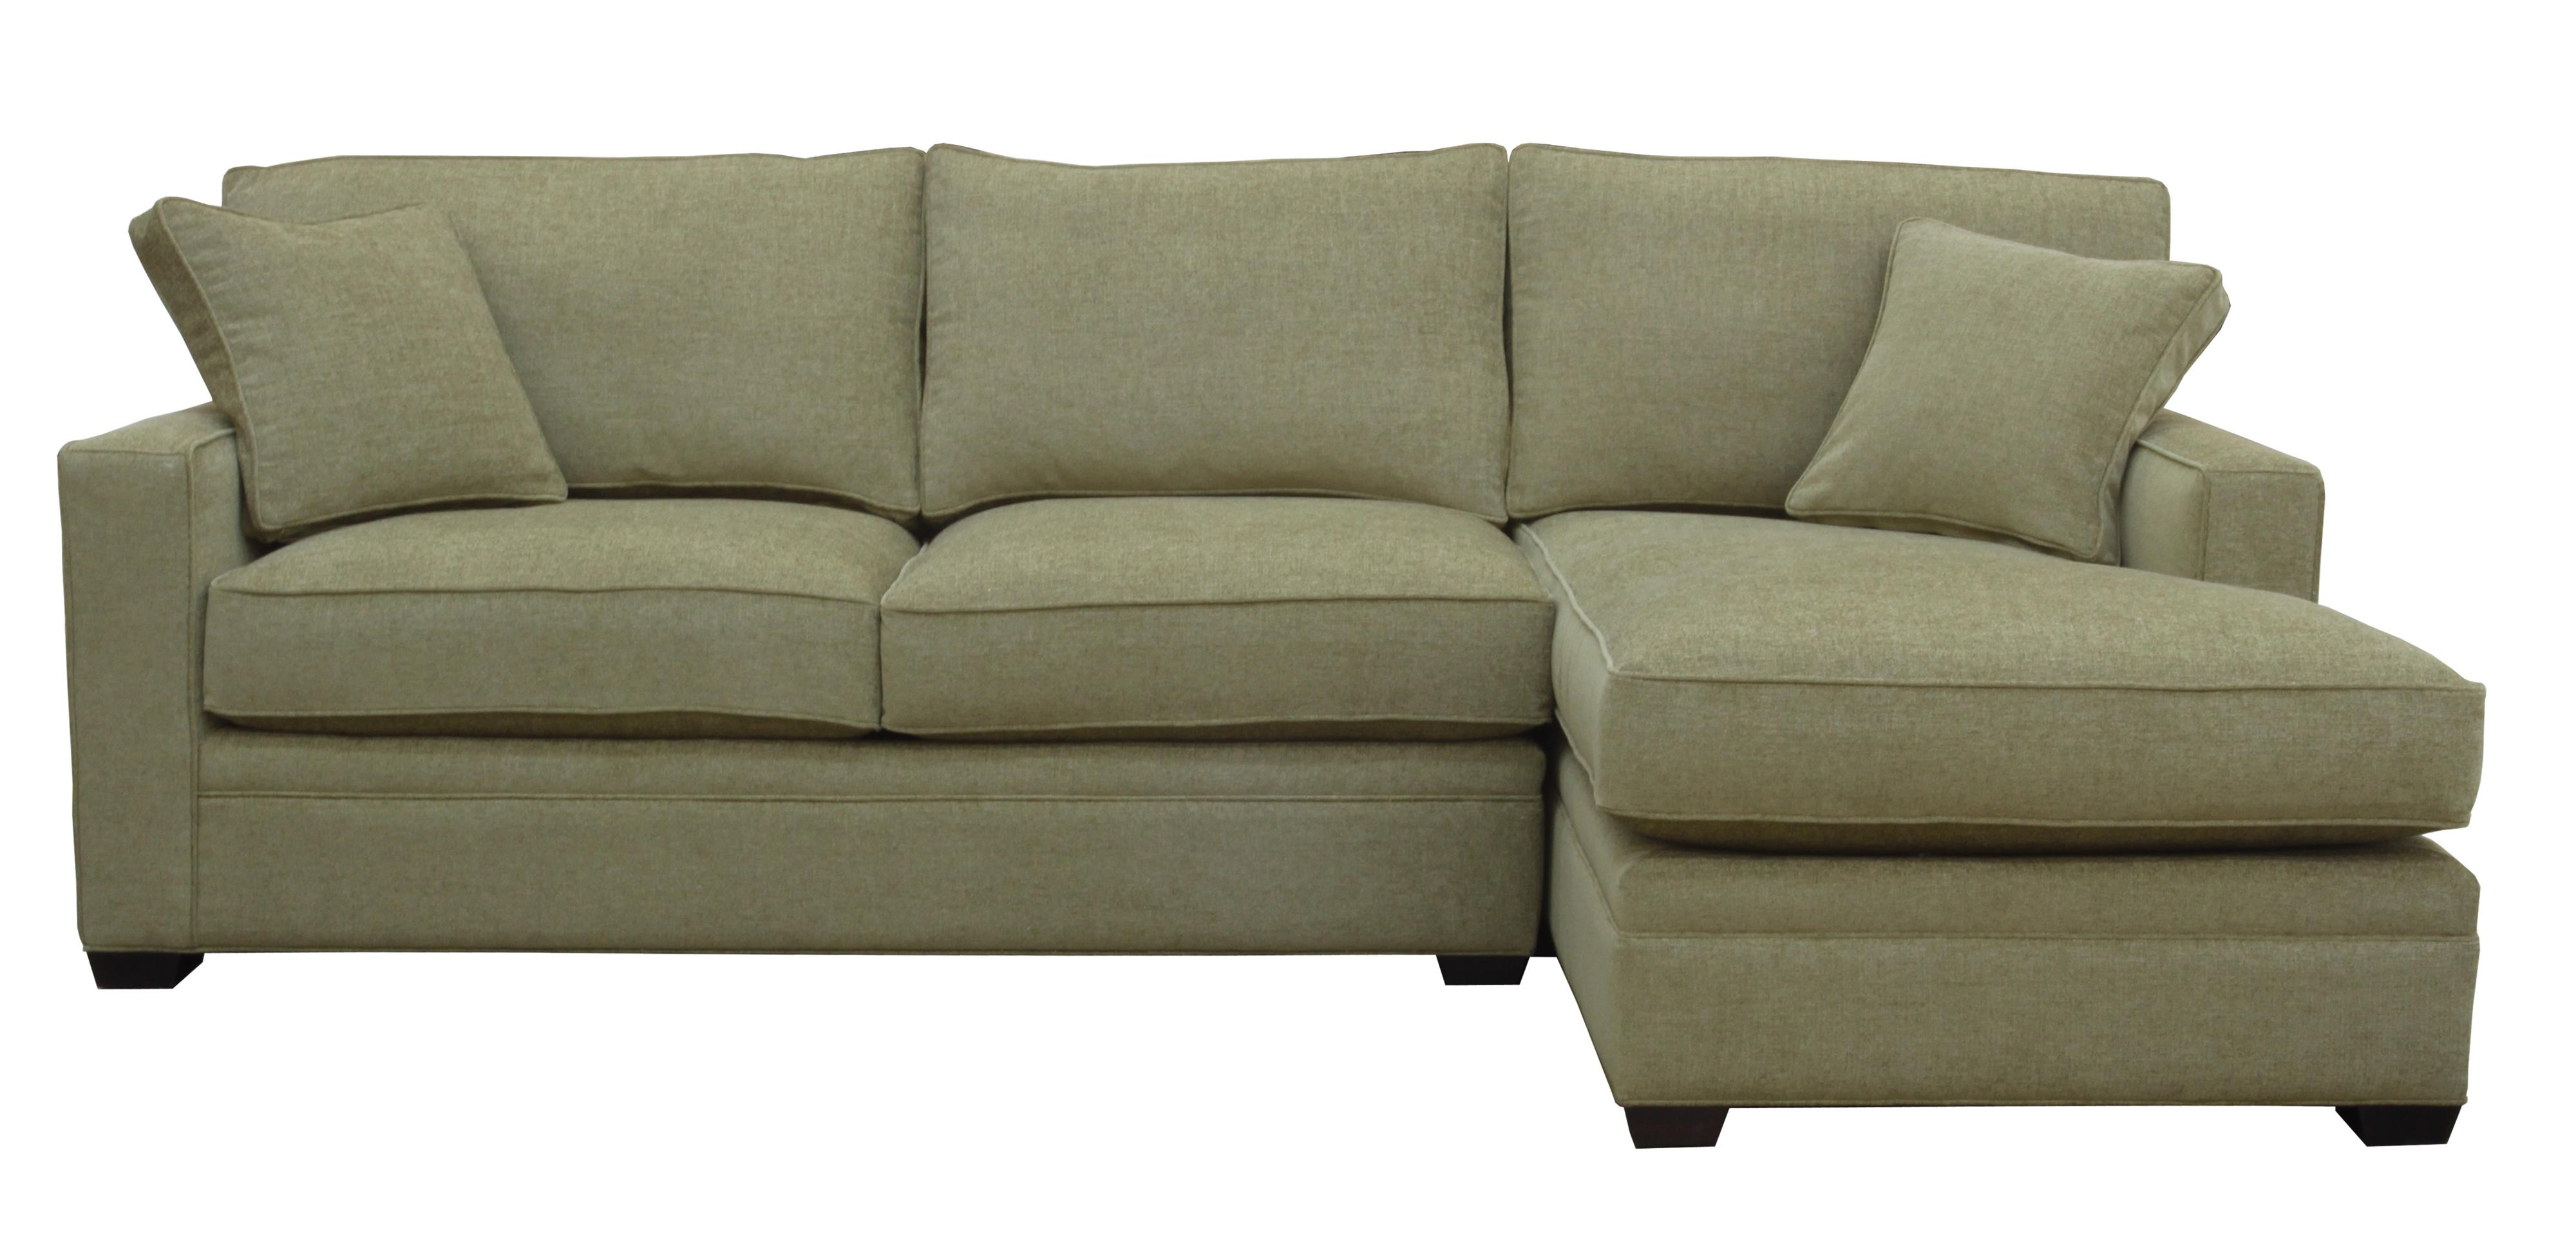 Sectional Sofa with RAF Chaise